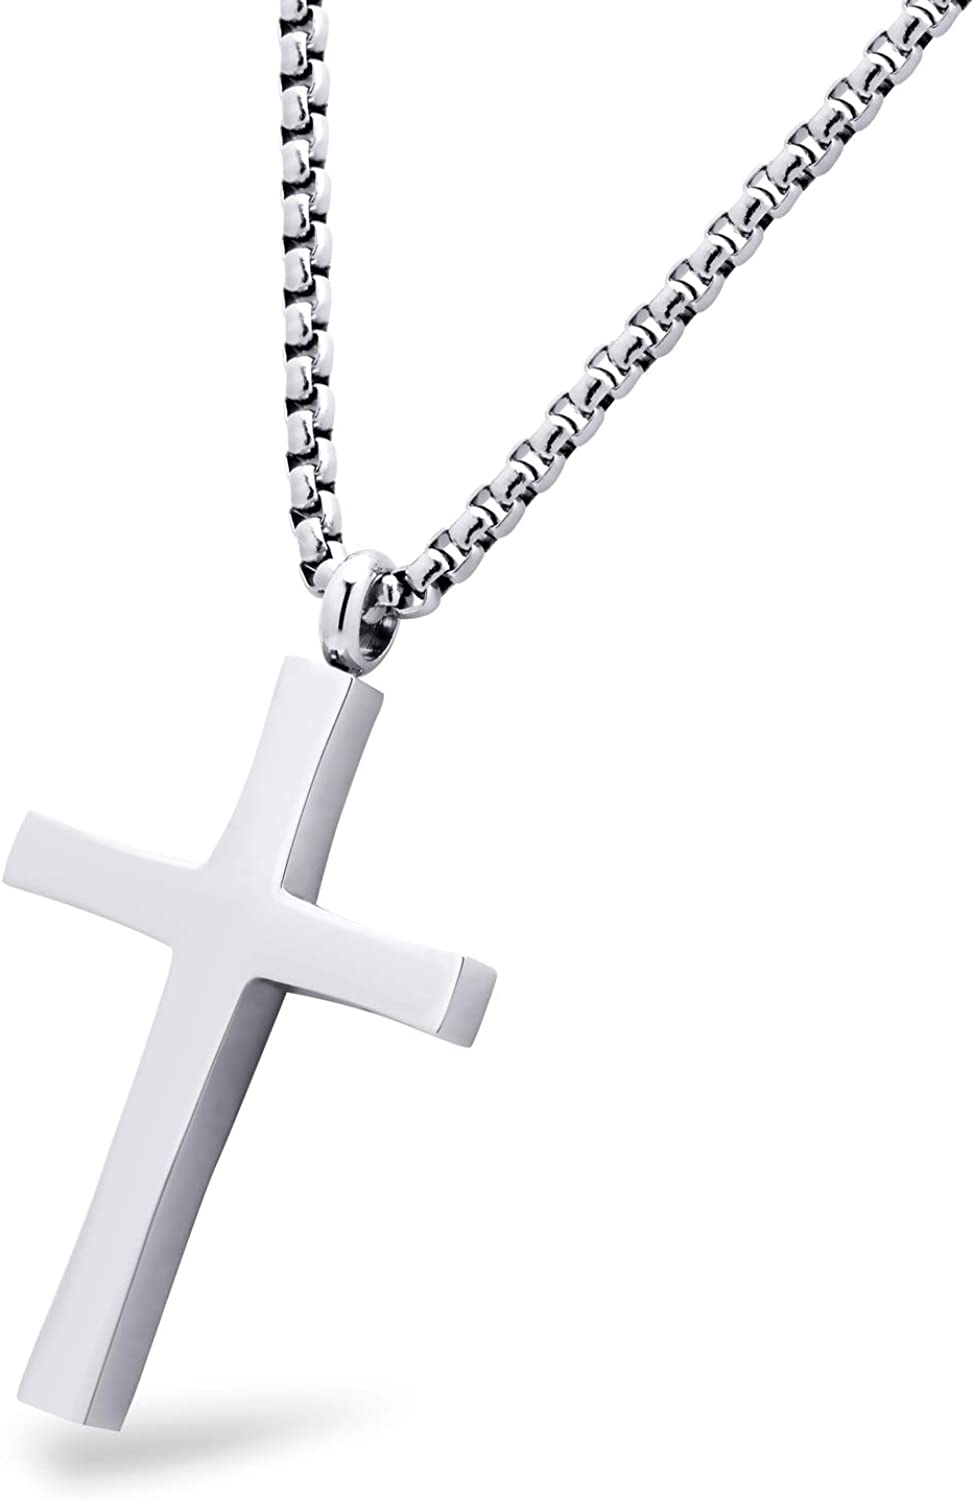 555Jewelry Stainless Steel Cross Adjustable Rolo Chain Pendant Necklace 16-28'' Inches